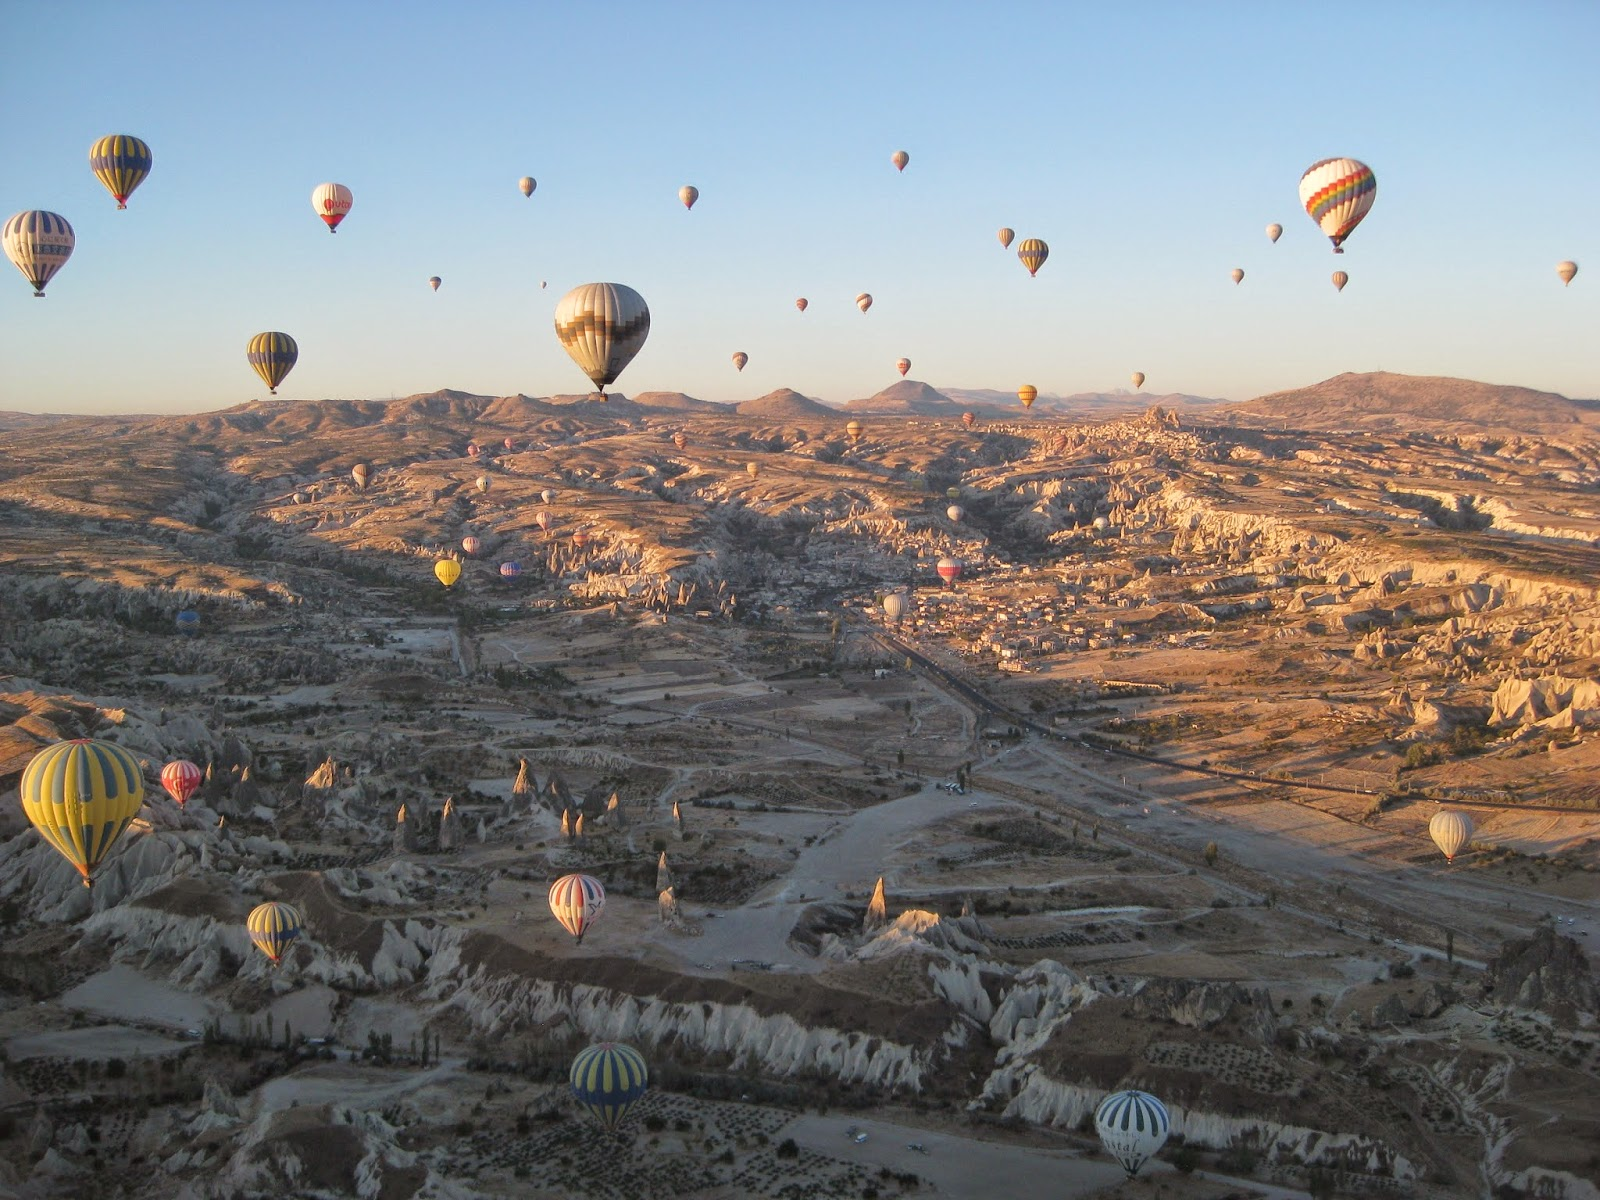 Cappadocia - The skyline is filled with balloons